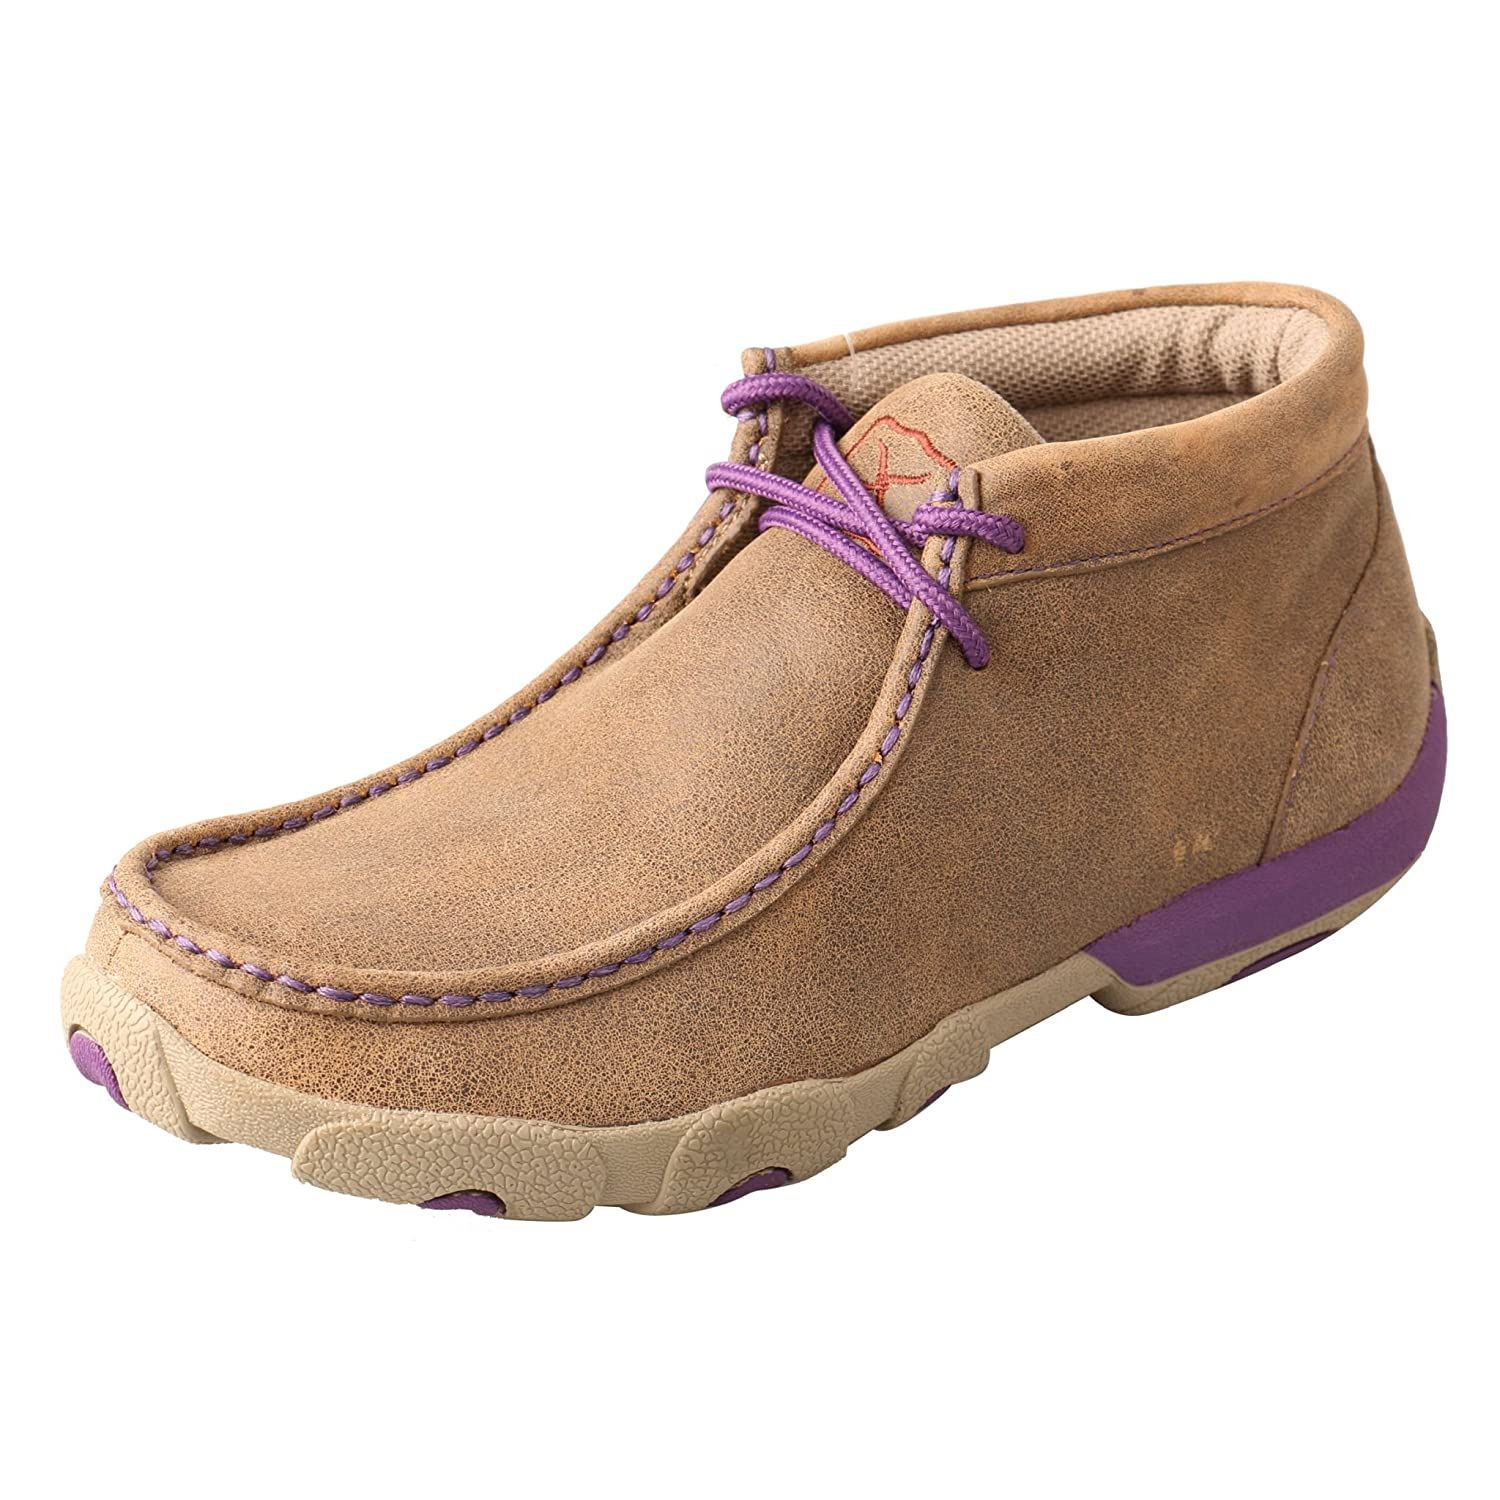 Twisted X Women's Leather Lace-up Rubber Sole Driving Moccasins - Bomber/Purple B015RWUOYW 9.5 B(M) US Bomber/Purple